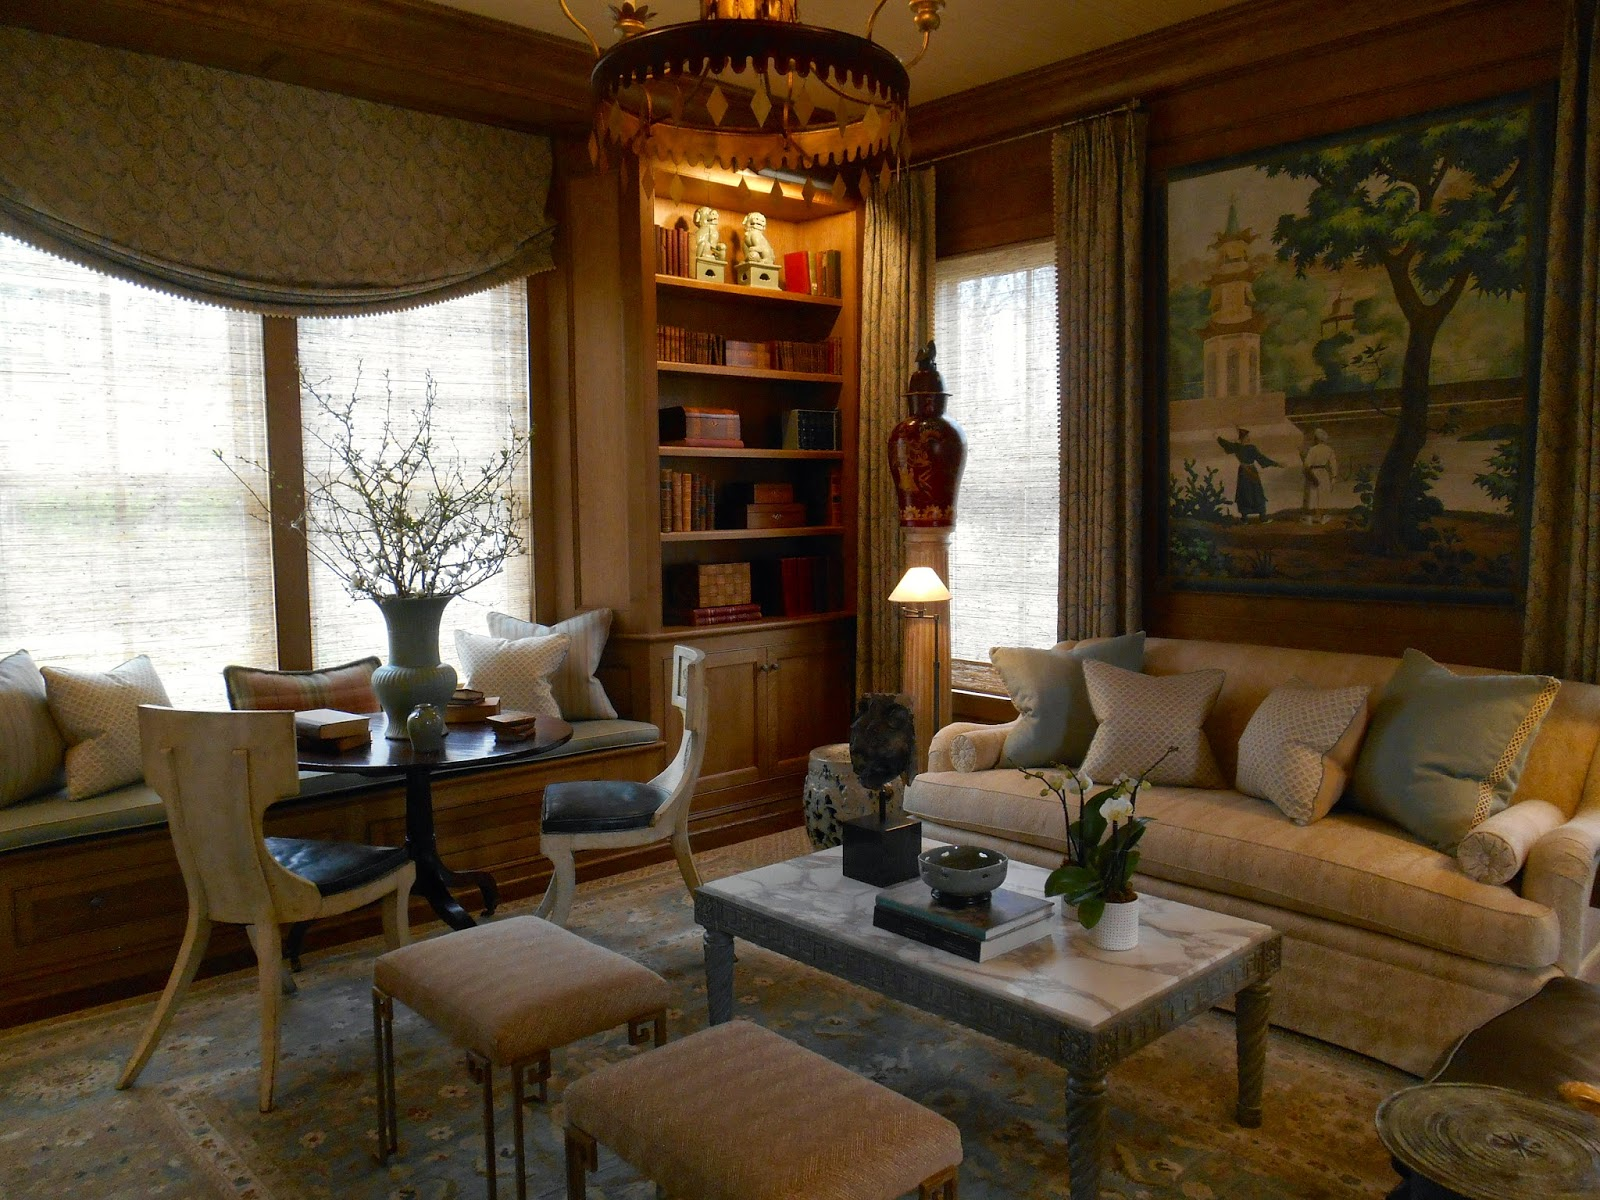 Adjoining The Living Room Is A Library In Quarter Sawn Oak